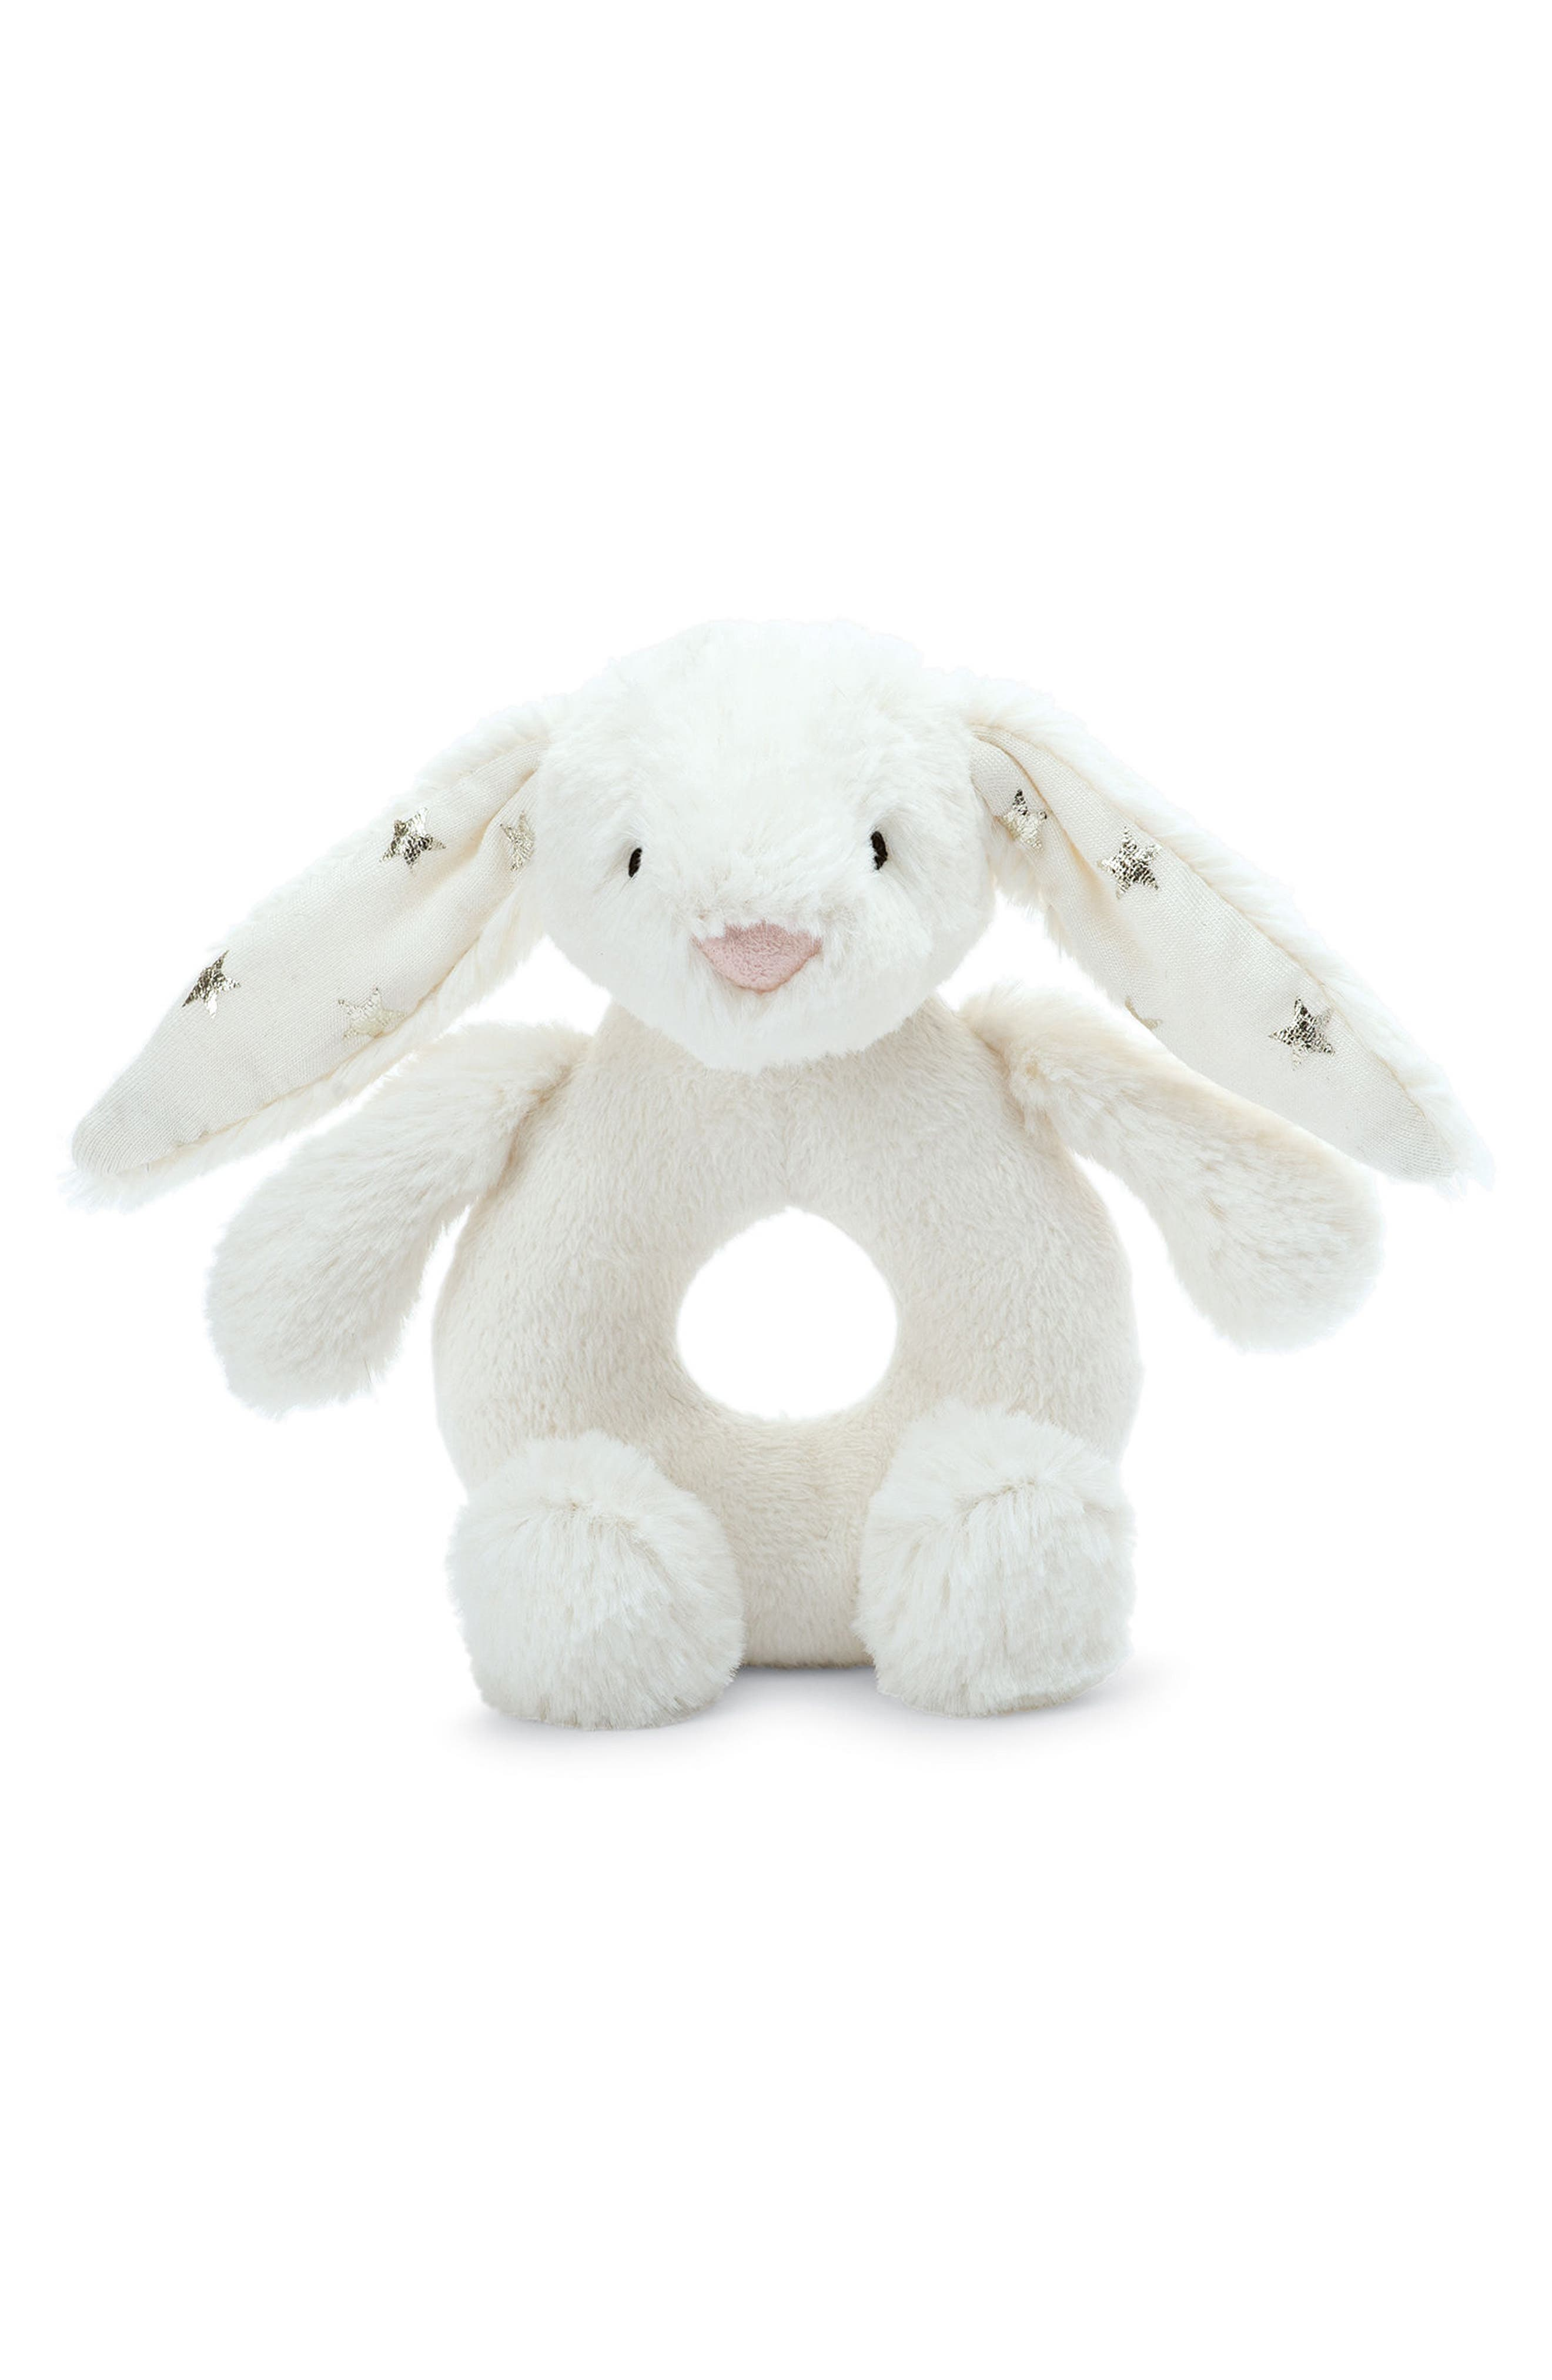 Main Image - Jellycat Twinkle Bunny Ring Rattle